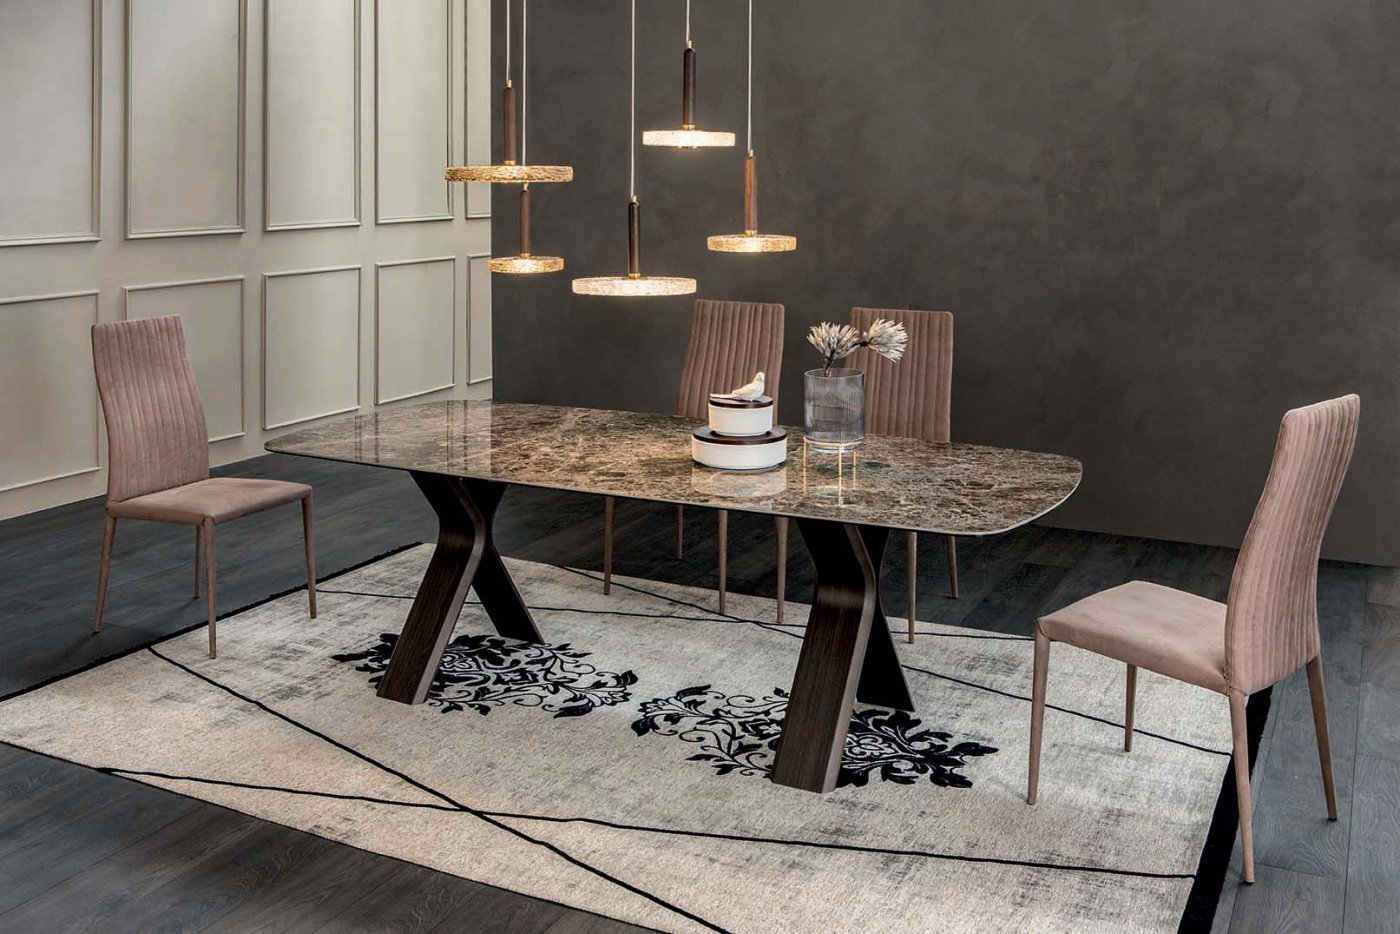 Still Extendible Table dining from Tonin Casa, designed by Angelo Tomaiuolo